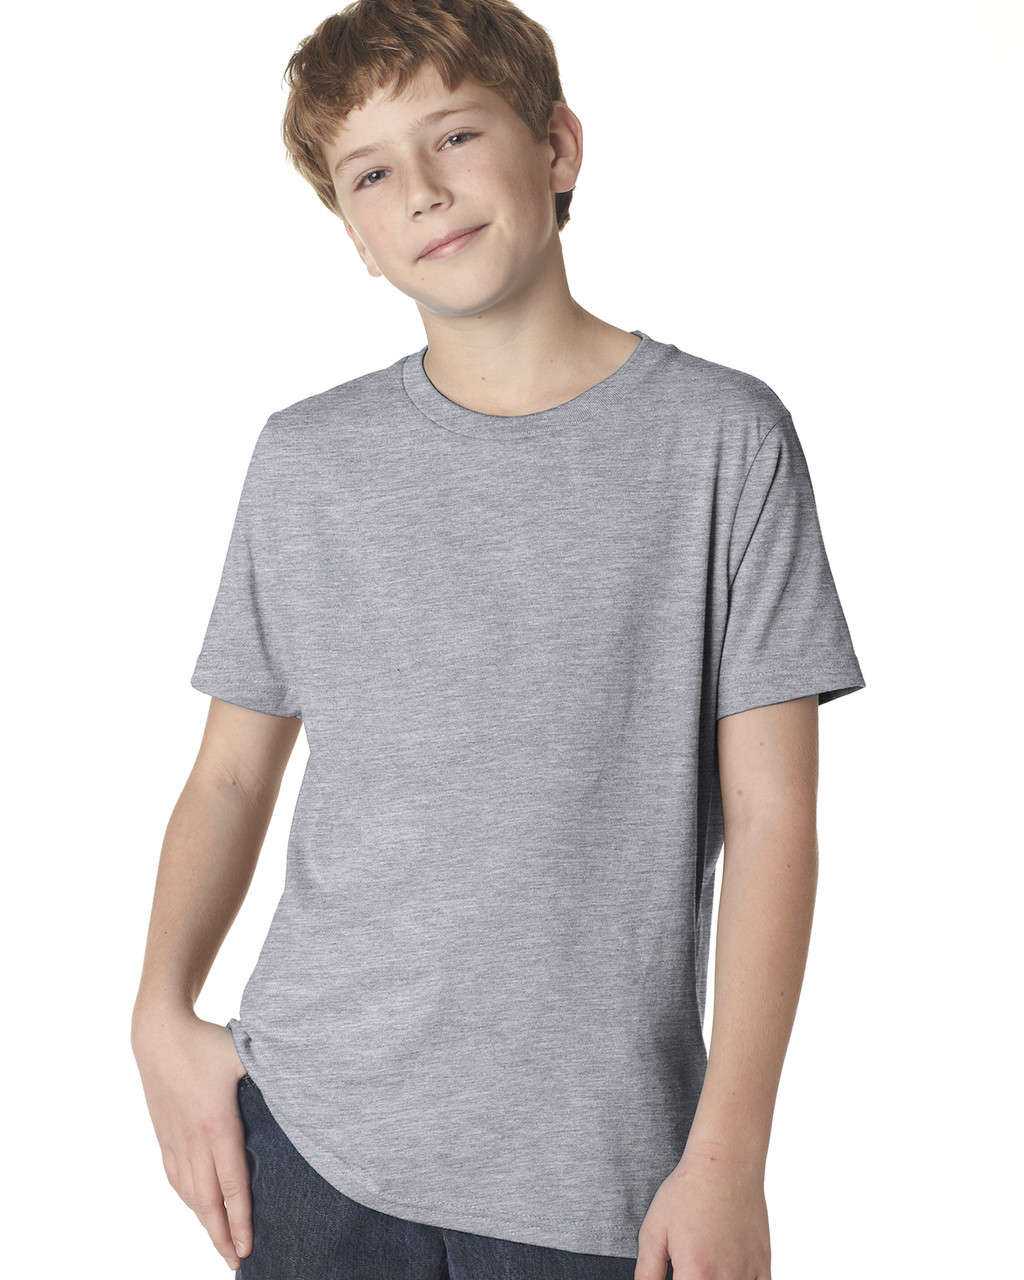 Heather Grey 3310 Next Level Boys' Premium Crew Tee | Blankclothing.ca